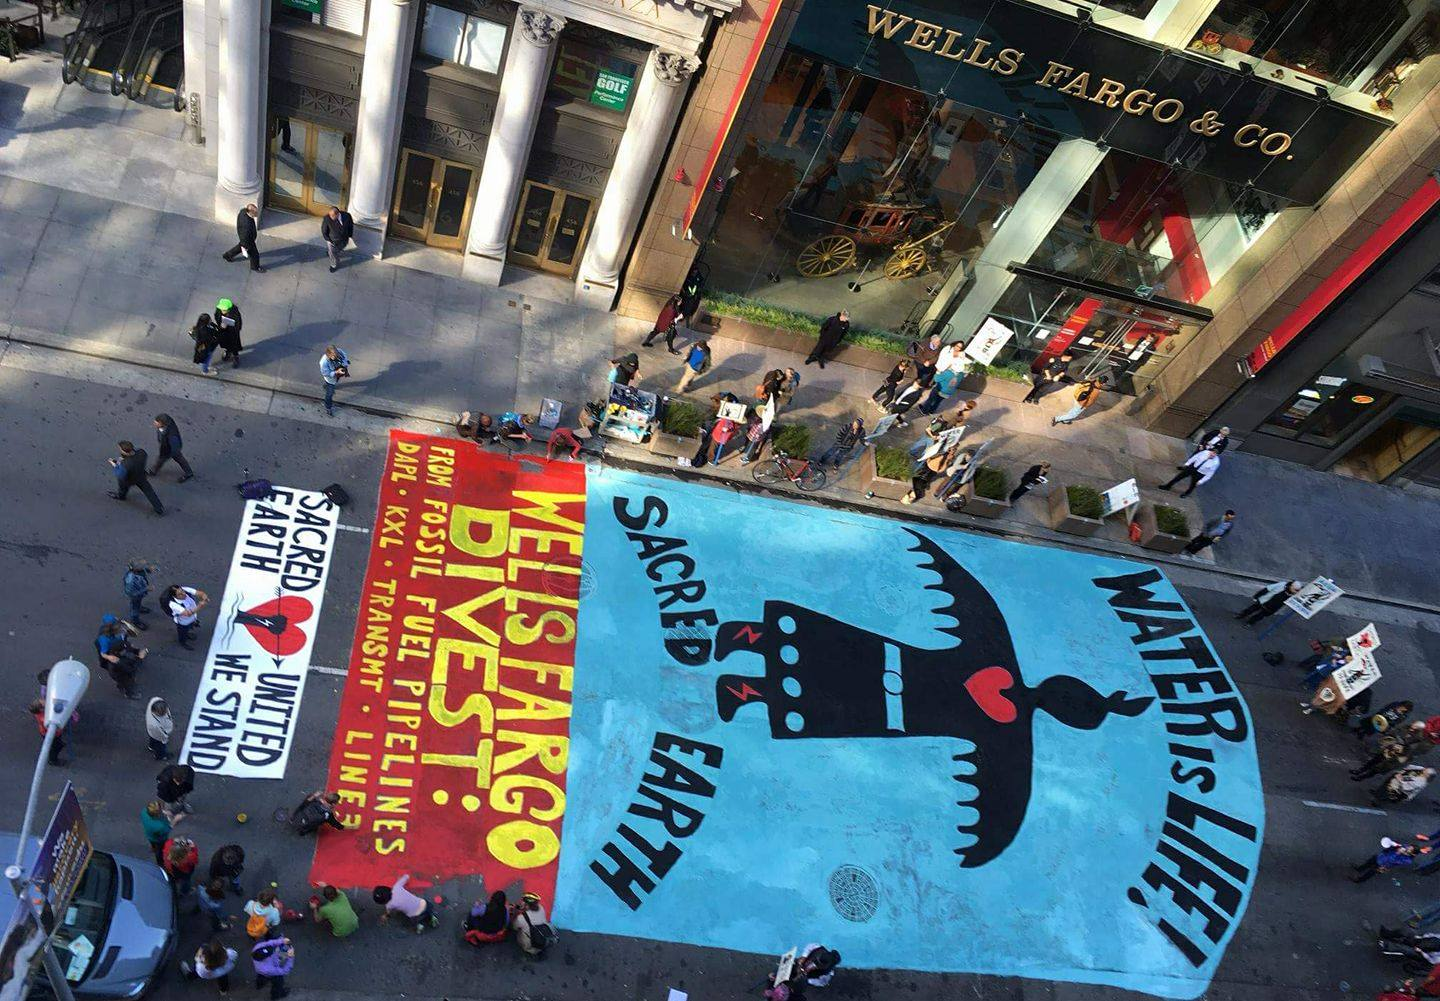 Protect the Sacred: Divest Wells Fargo - 350 Bay Area